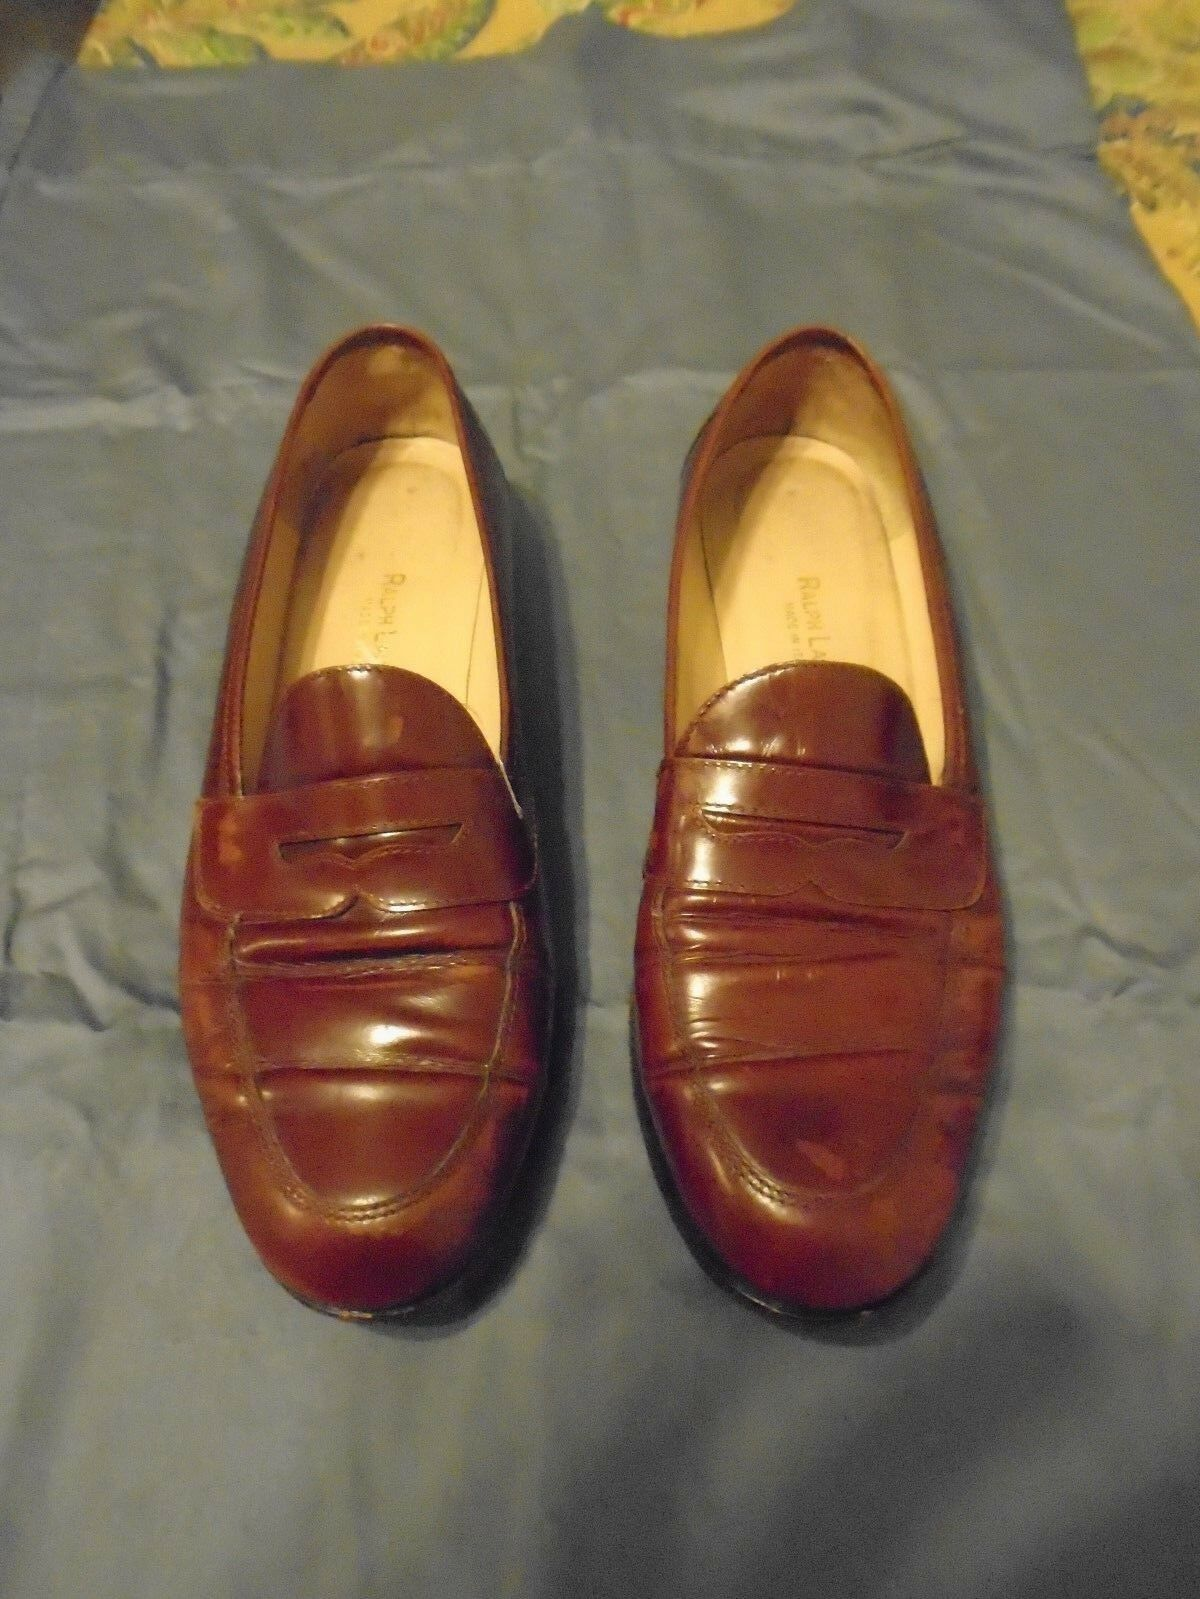 RALPH LAUREN Mens Brown Penny Loafers shoes.  Leather 8.5B.